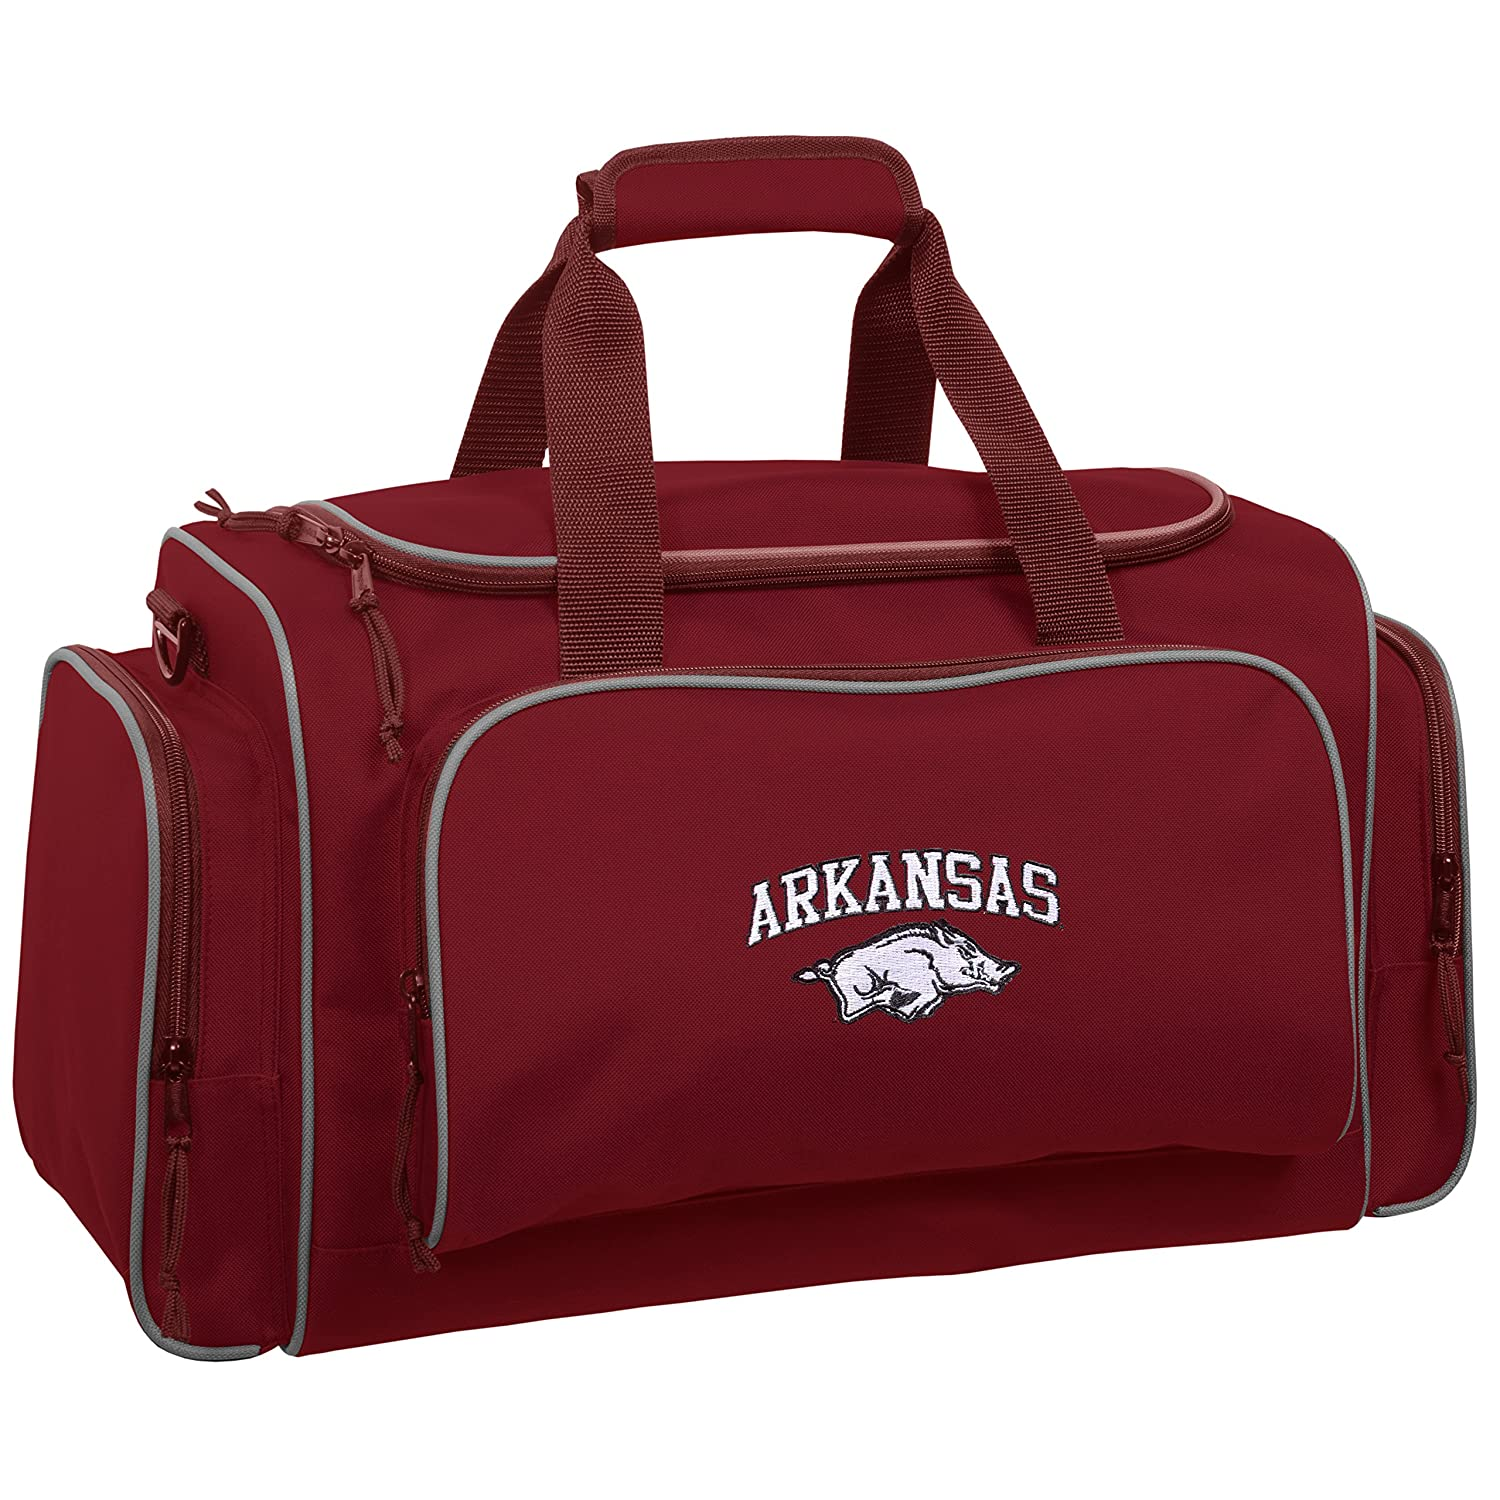 Oklahoma Sooners One Size Red WallyBags 21 Collegiate Duffel Bag